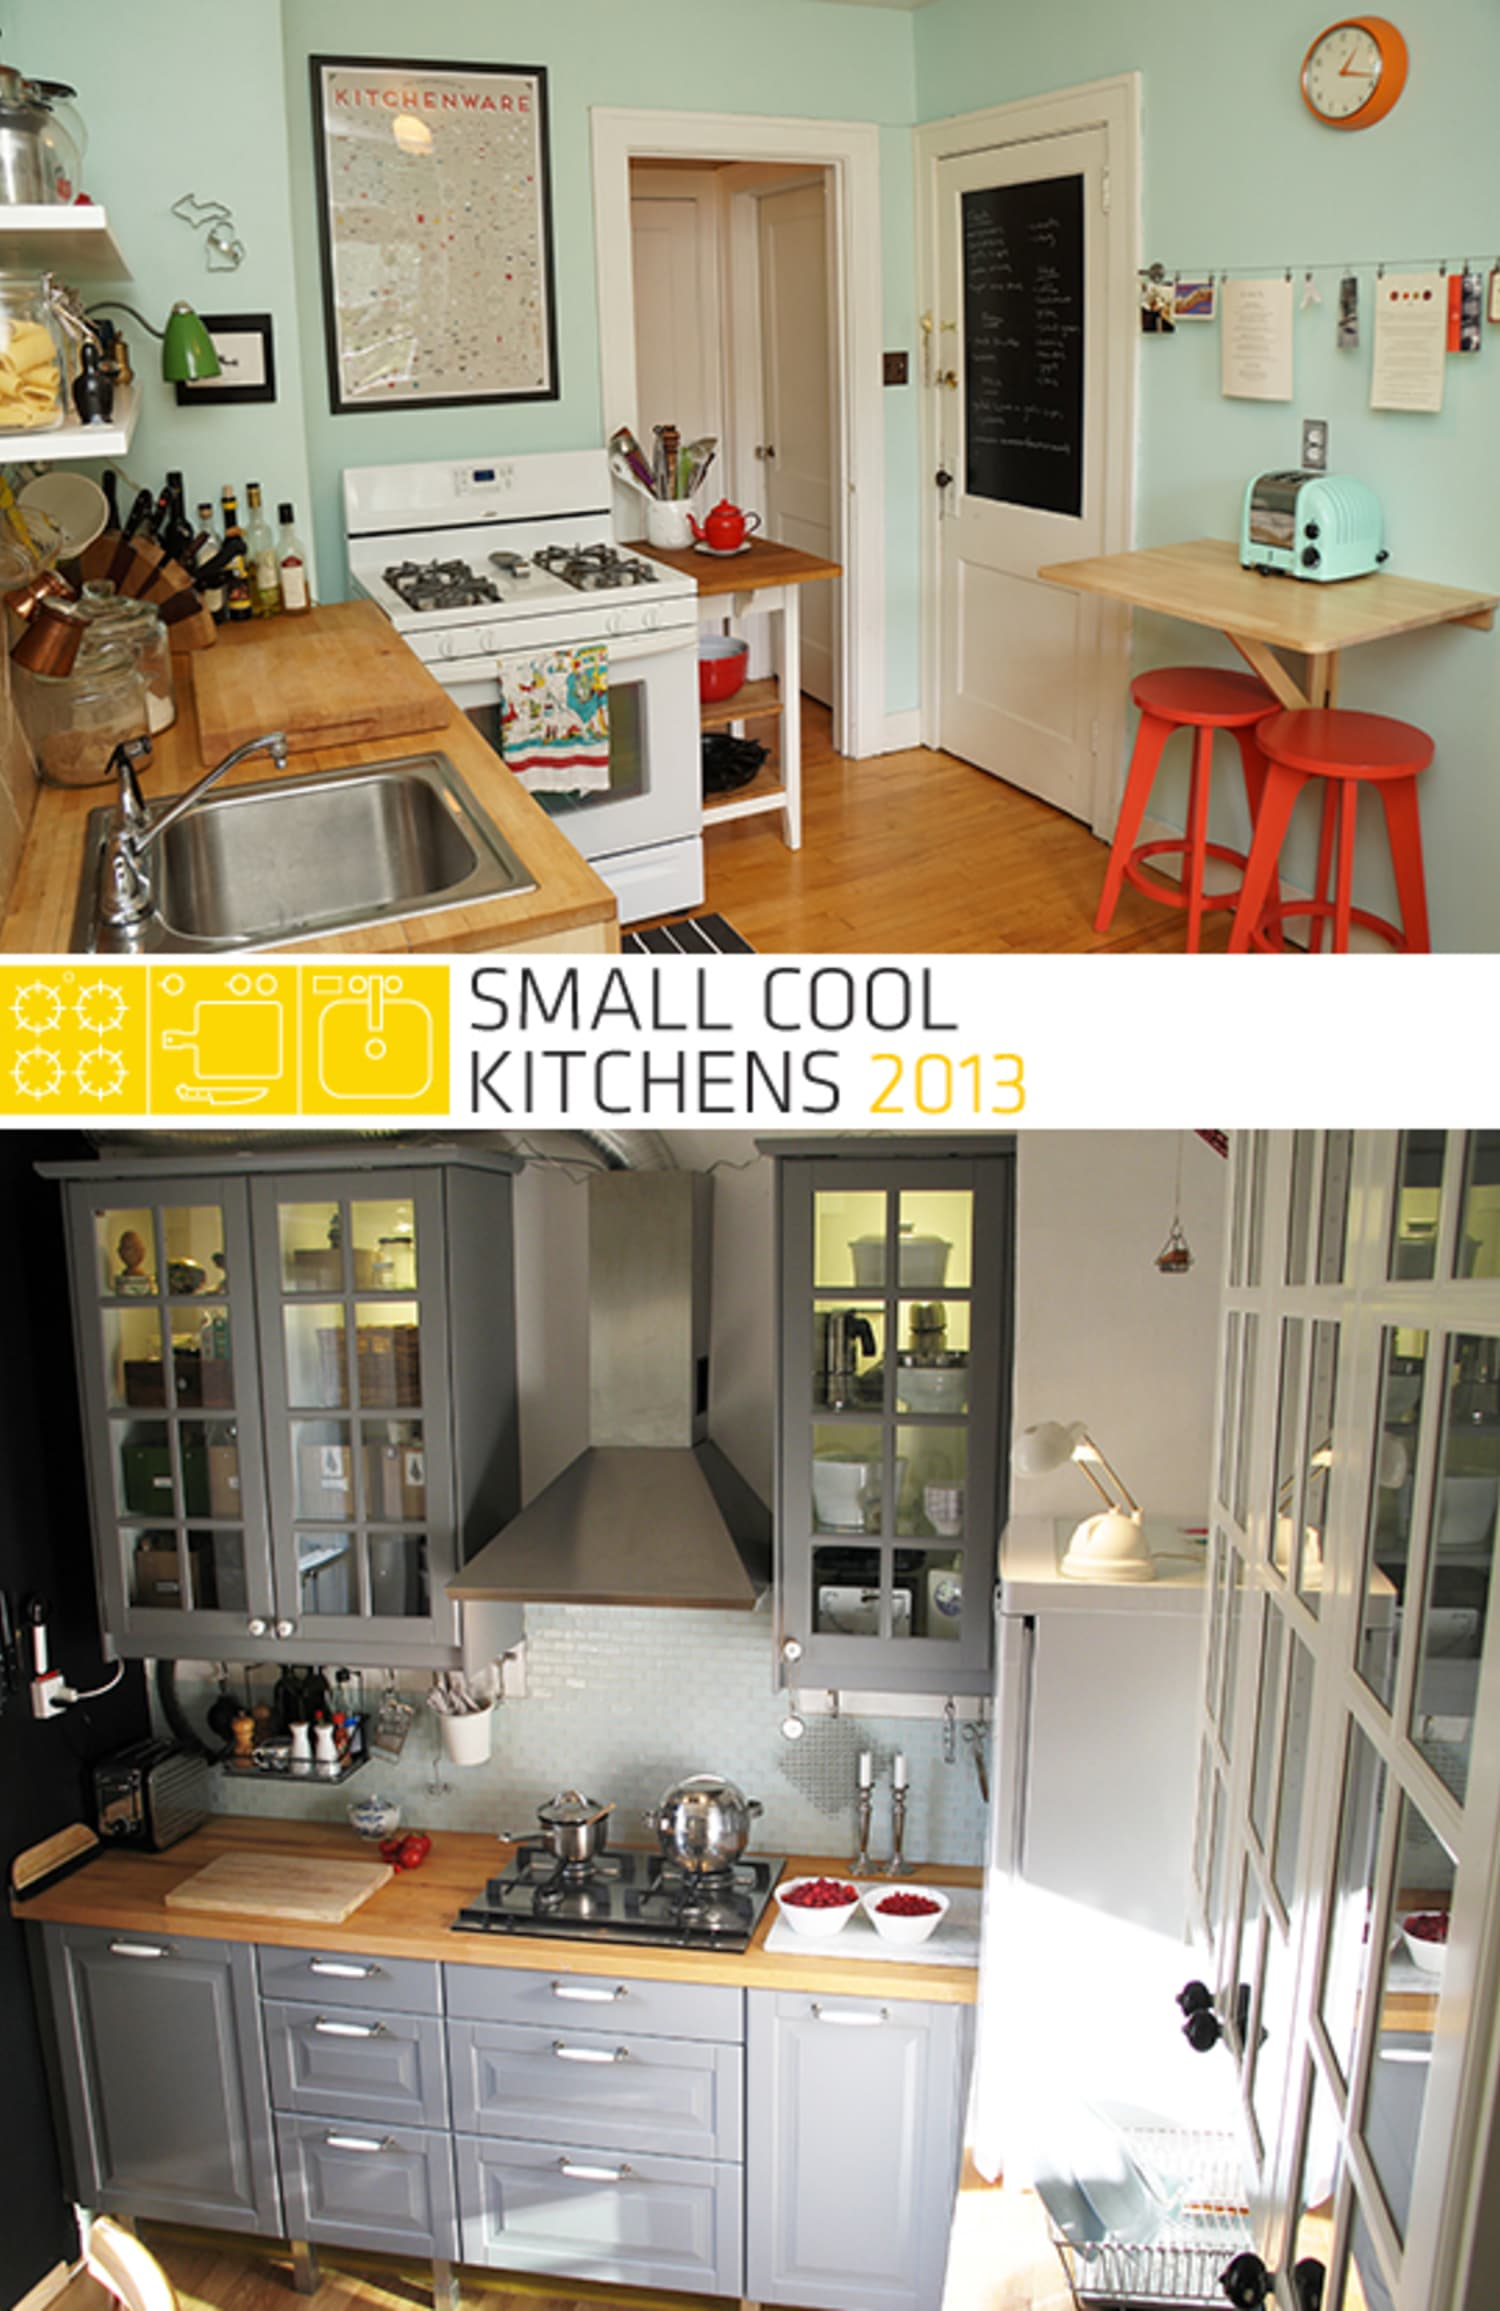 The Winners Of Small Cool Kitchens 2013!